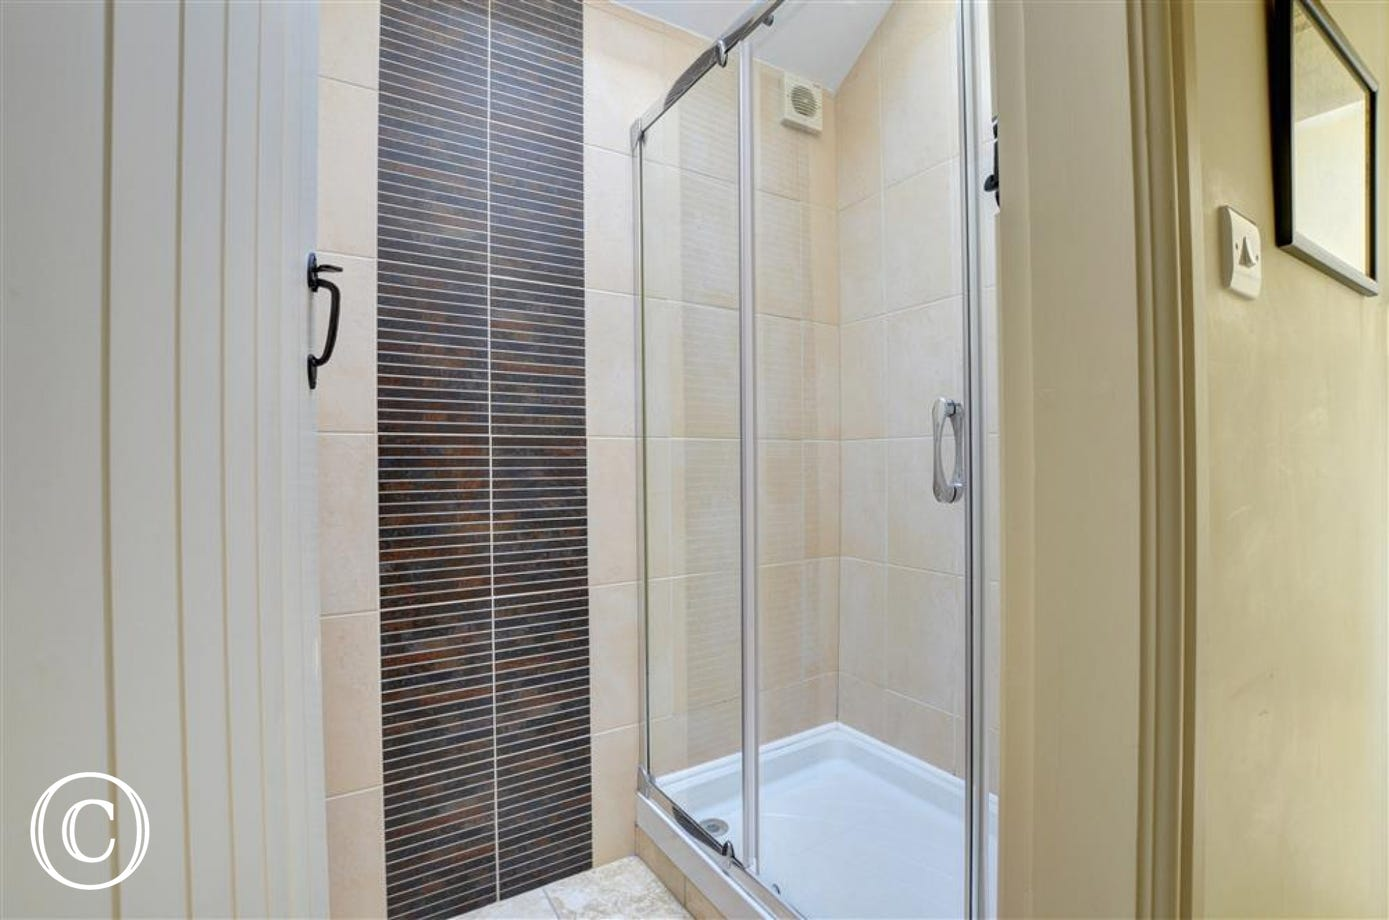 FL046 - Shower Room